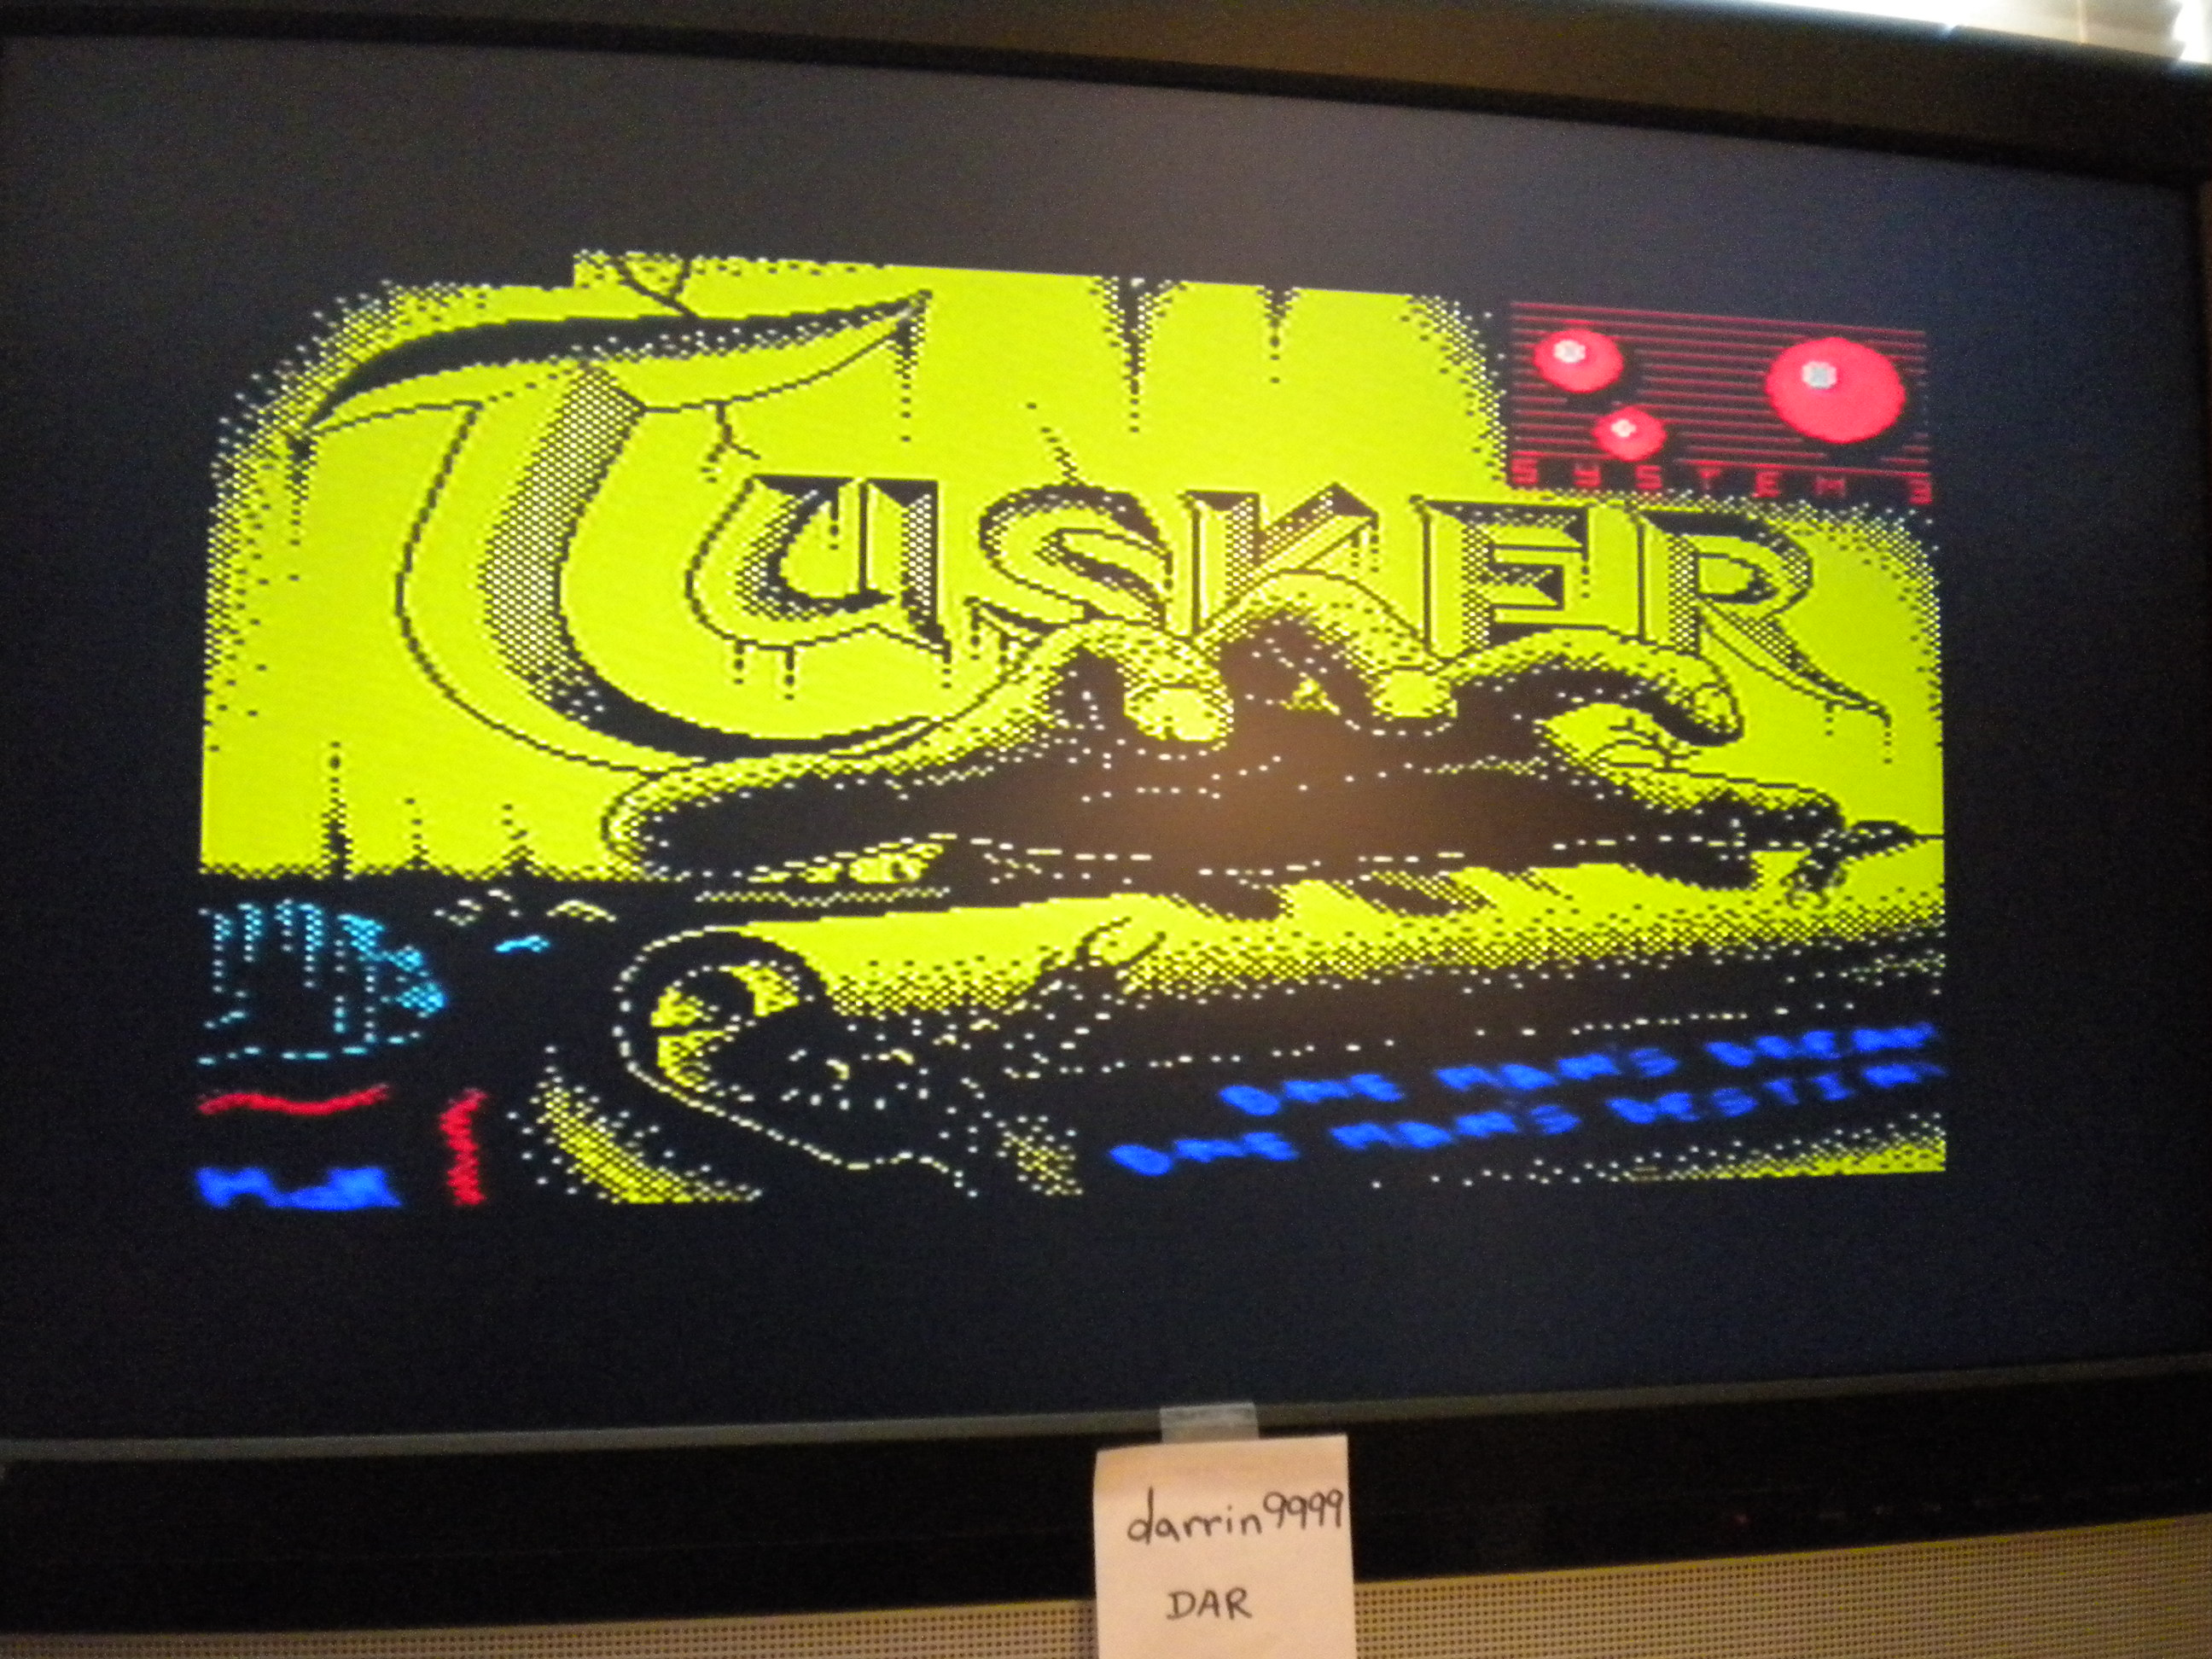 darrin9999: Tusker (ZX Spectrum Emulated) 11,900 points on 2017-05-20 12:55:16